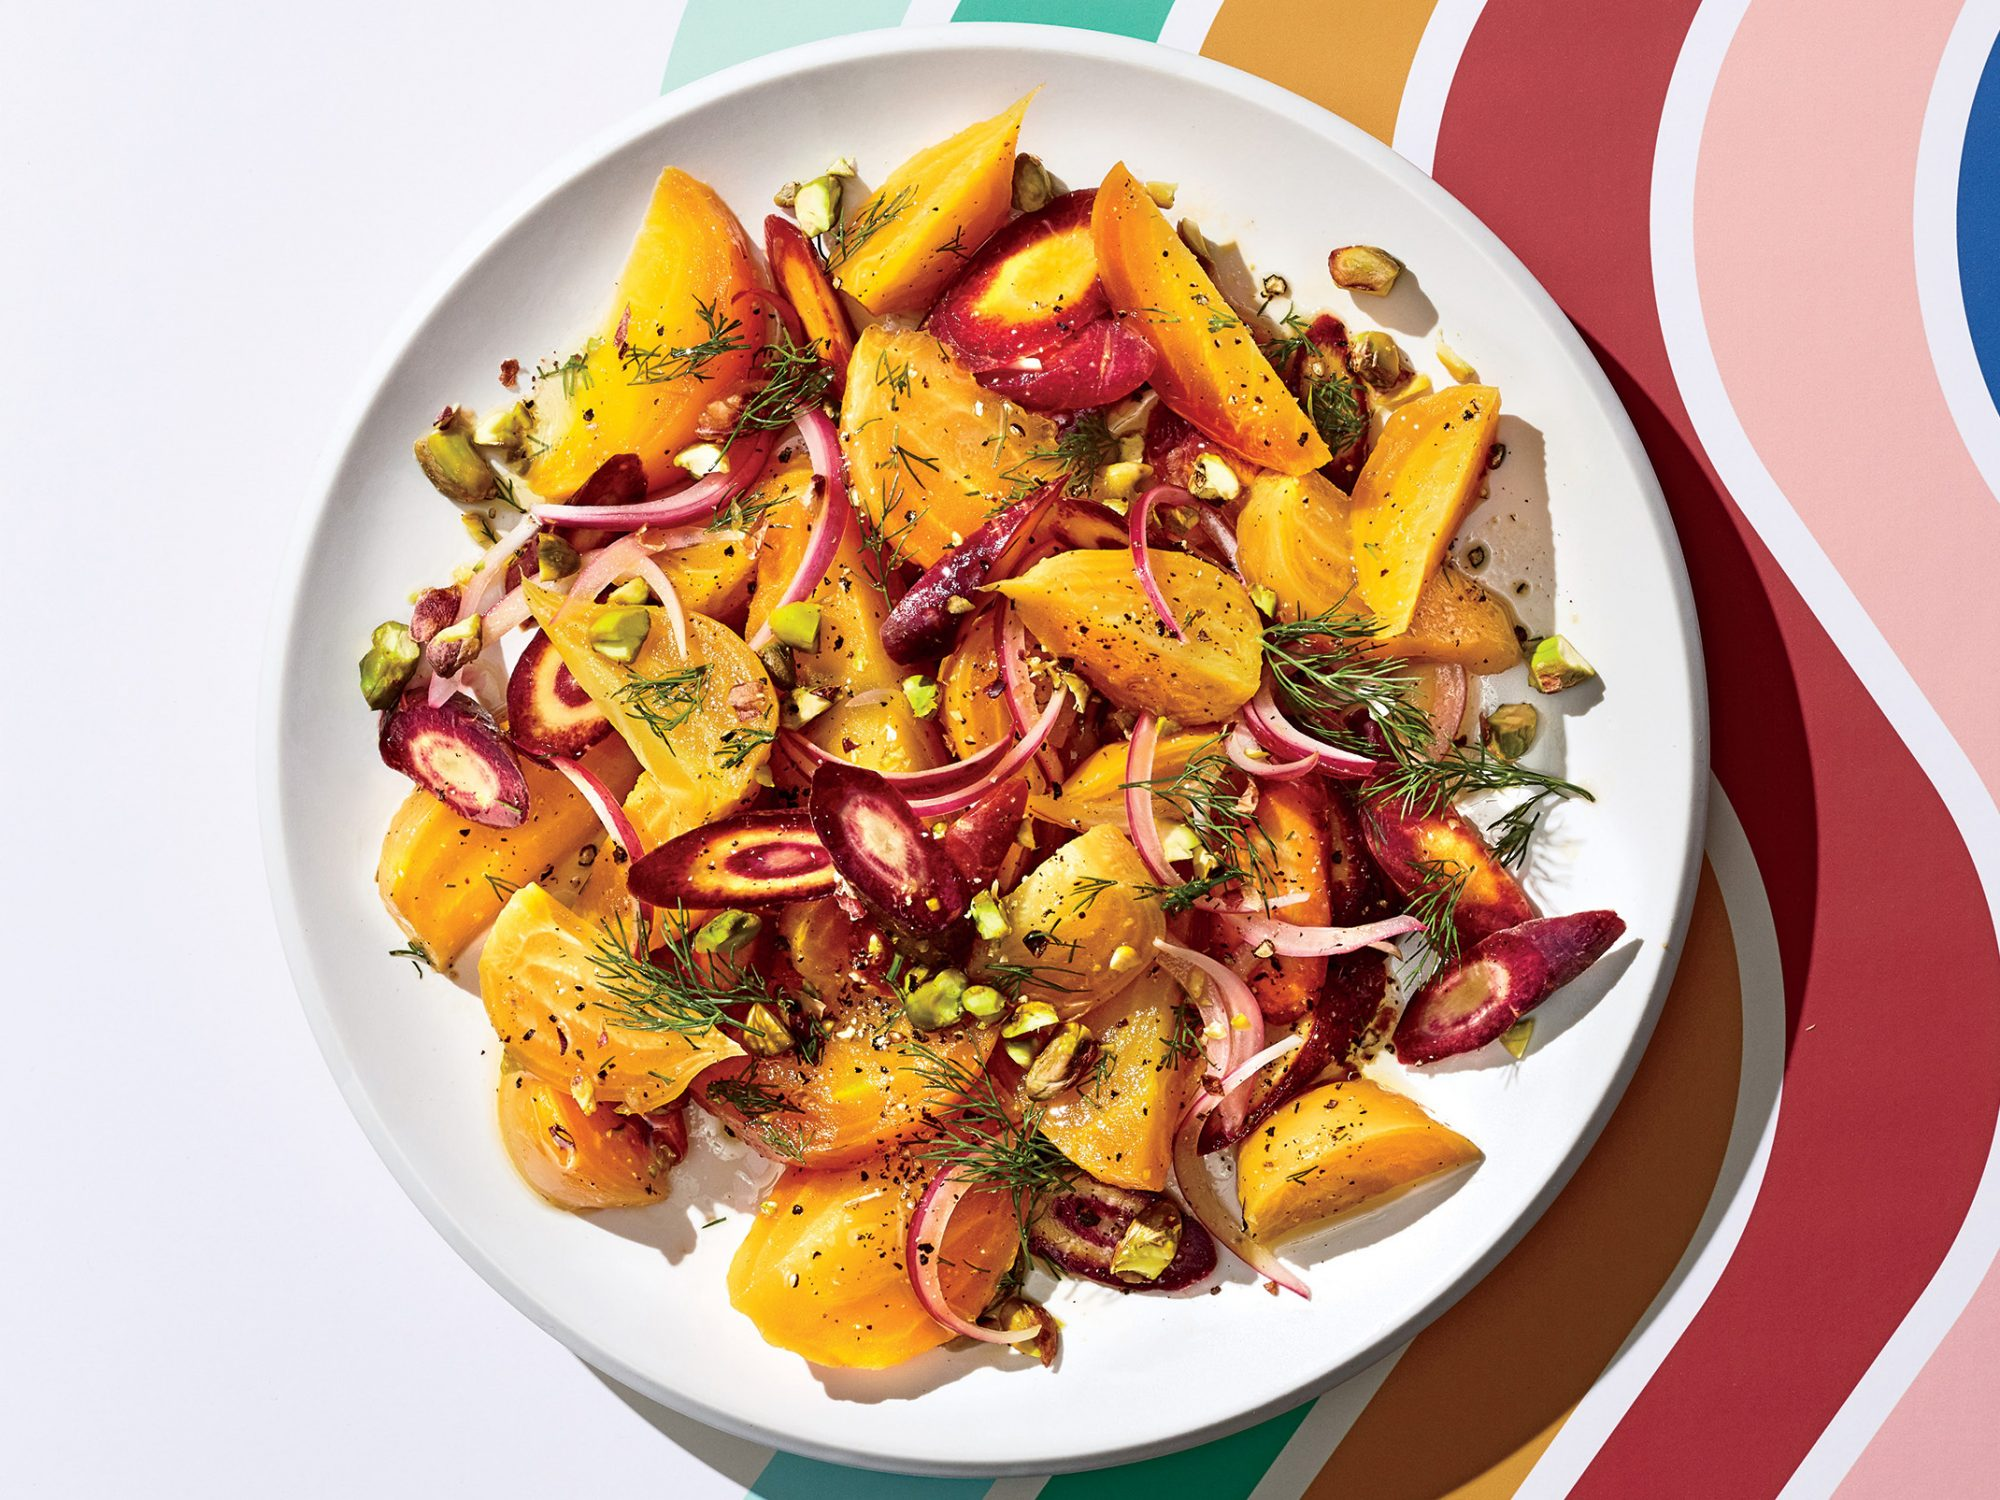 Beet, Carrot, and Pistachio Salad